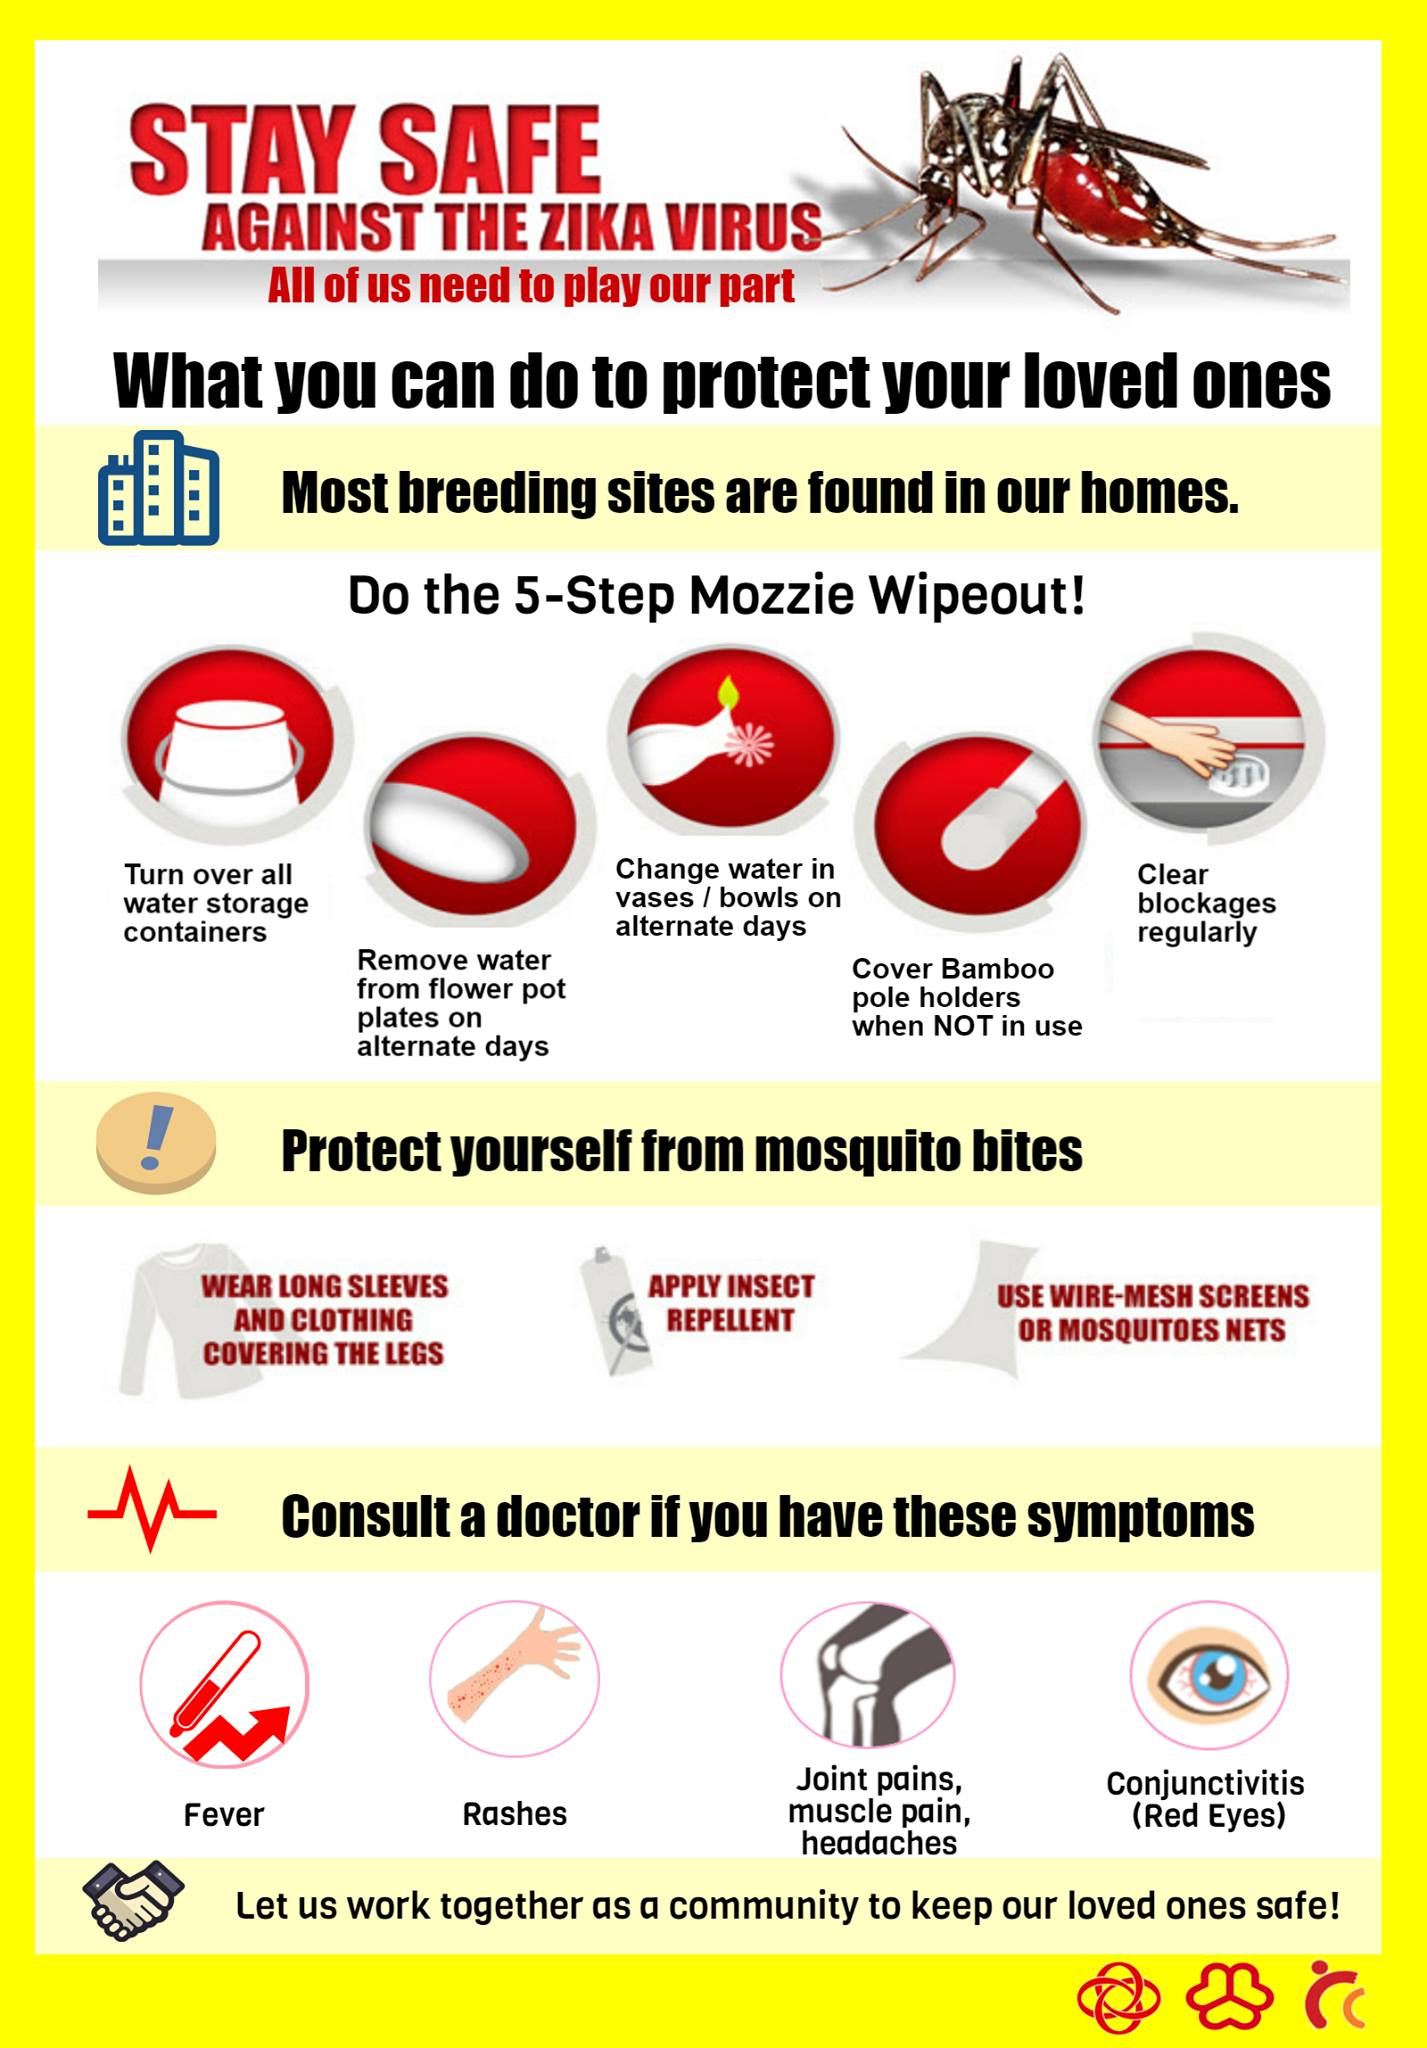 Stay Safe Against Zika Virus